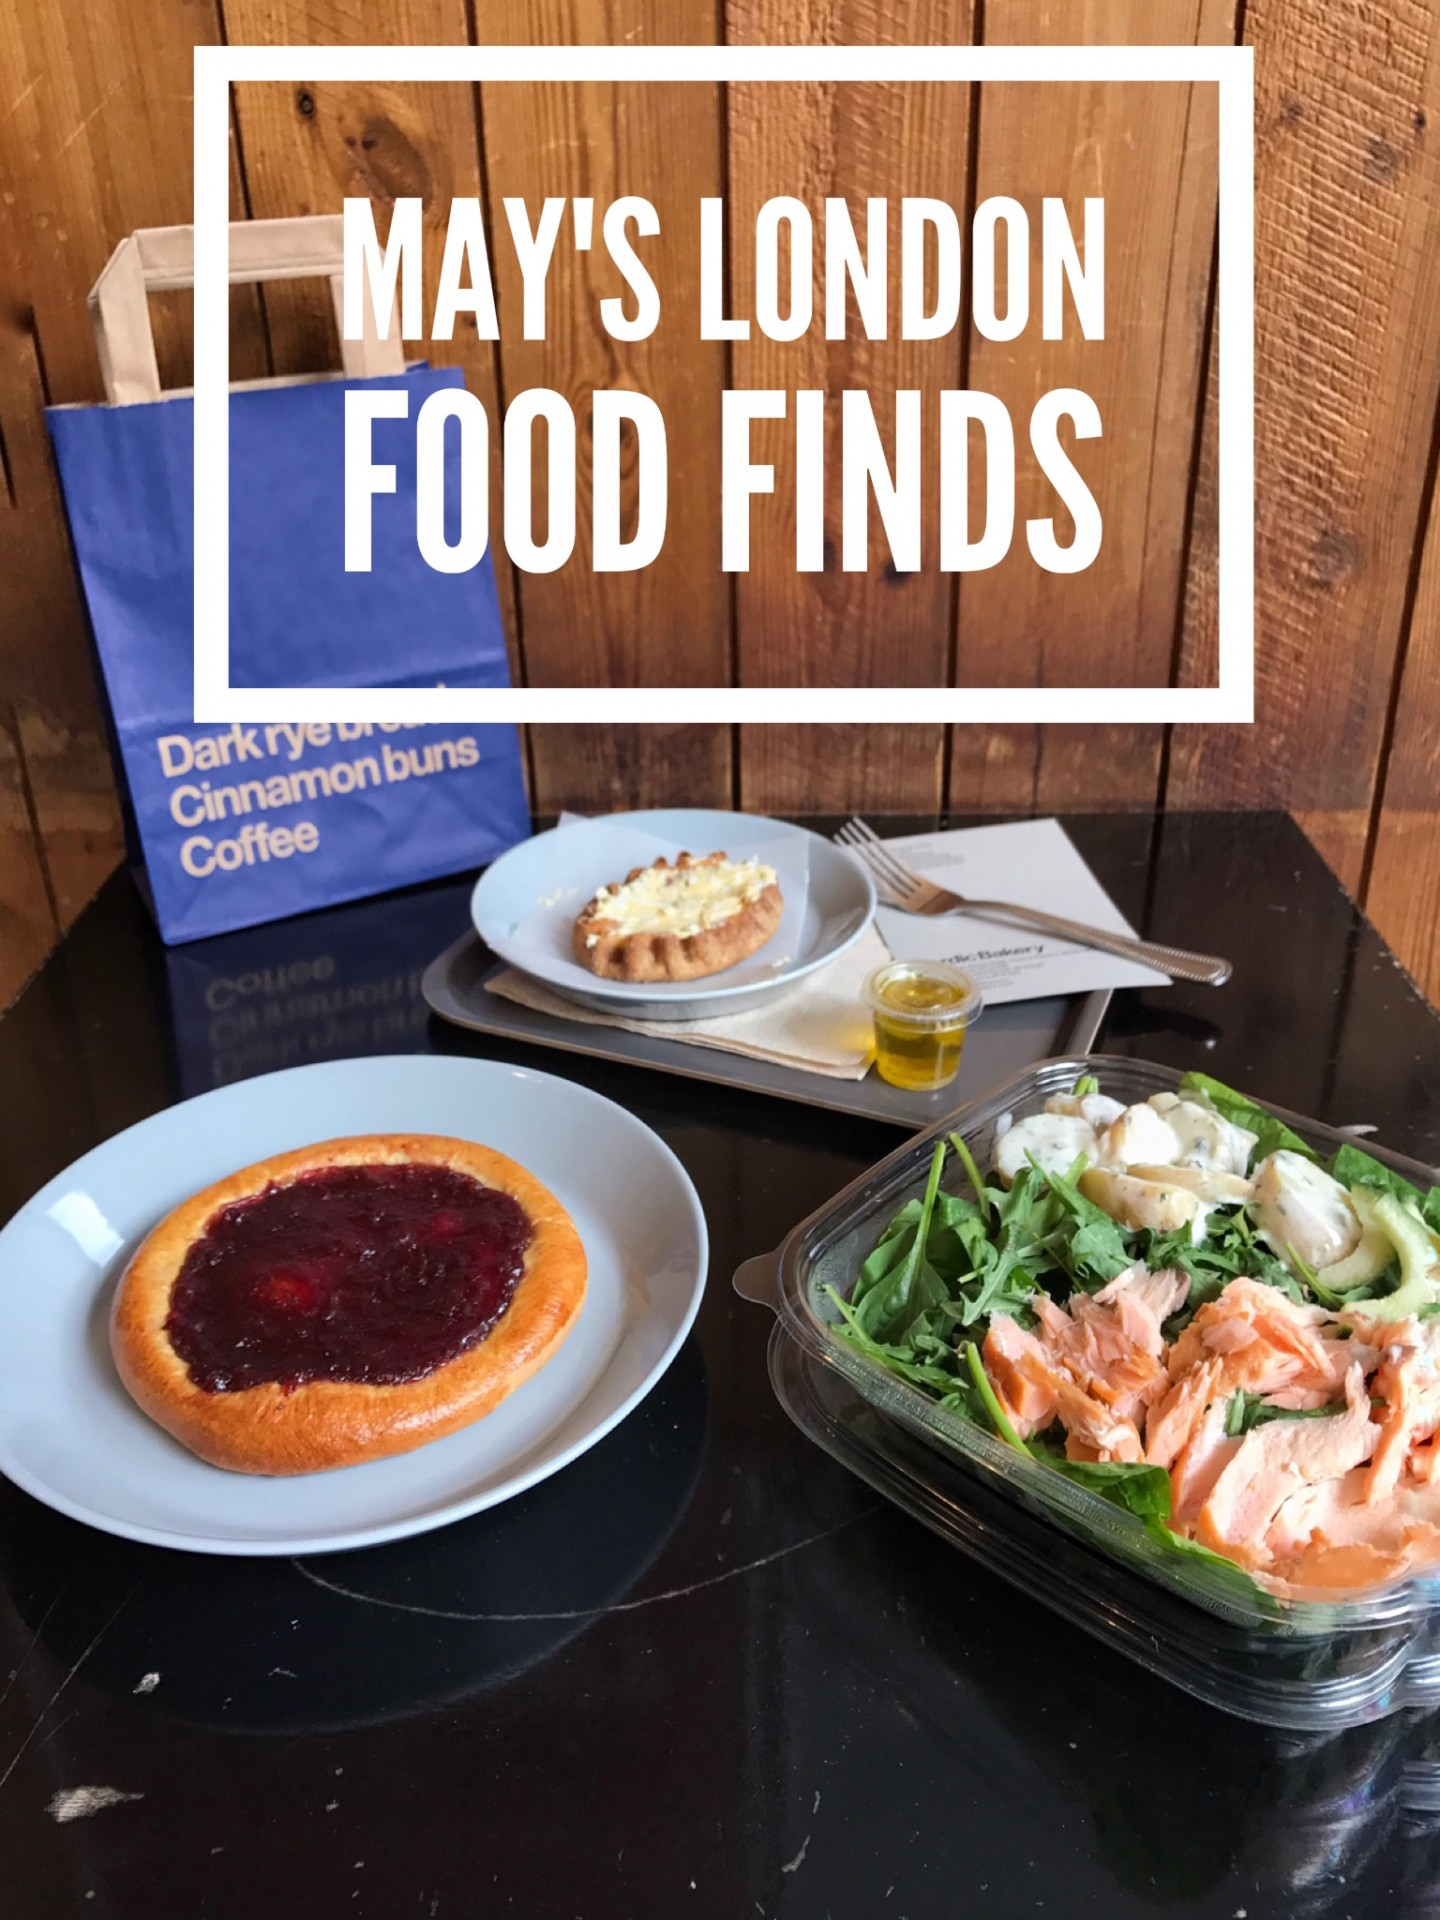 May's London Food Finds (2018) : Picks From London's Best Restaurants